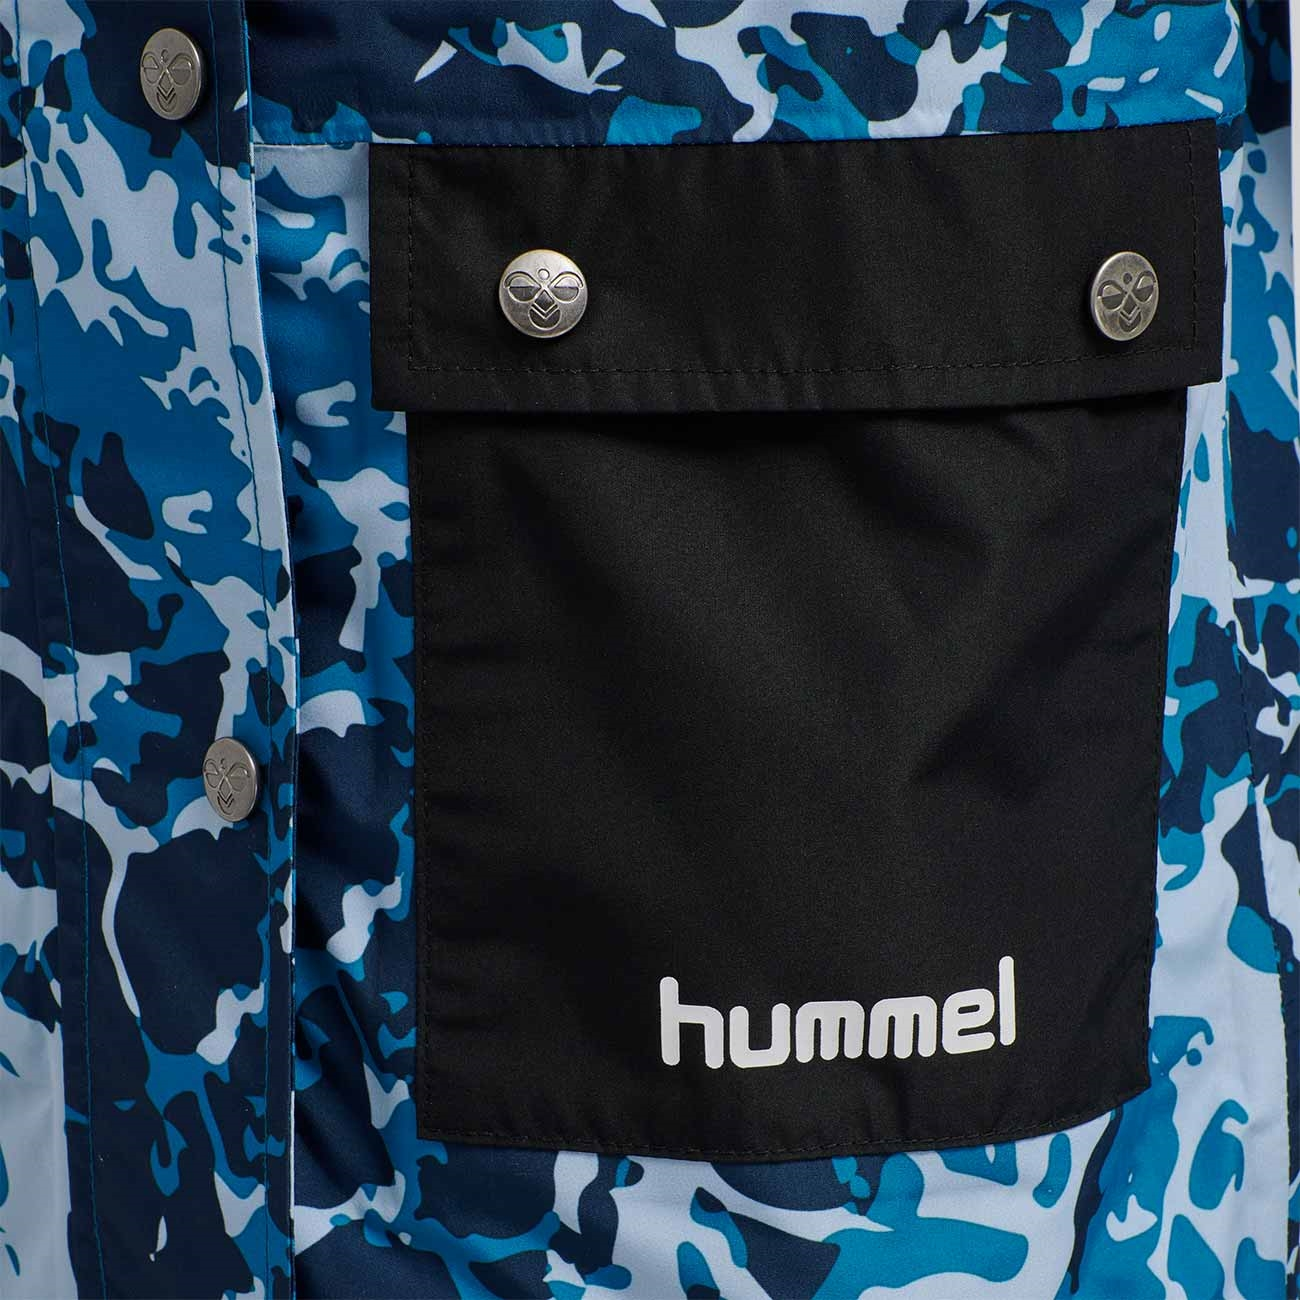 hummel-jacket-jakke-mykonos-blue-dark-blue-light-blue-pattern-moenster